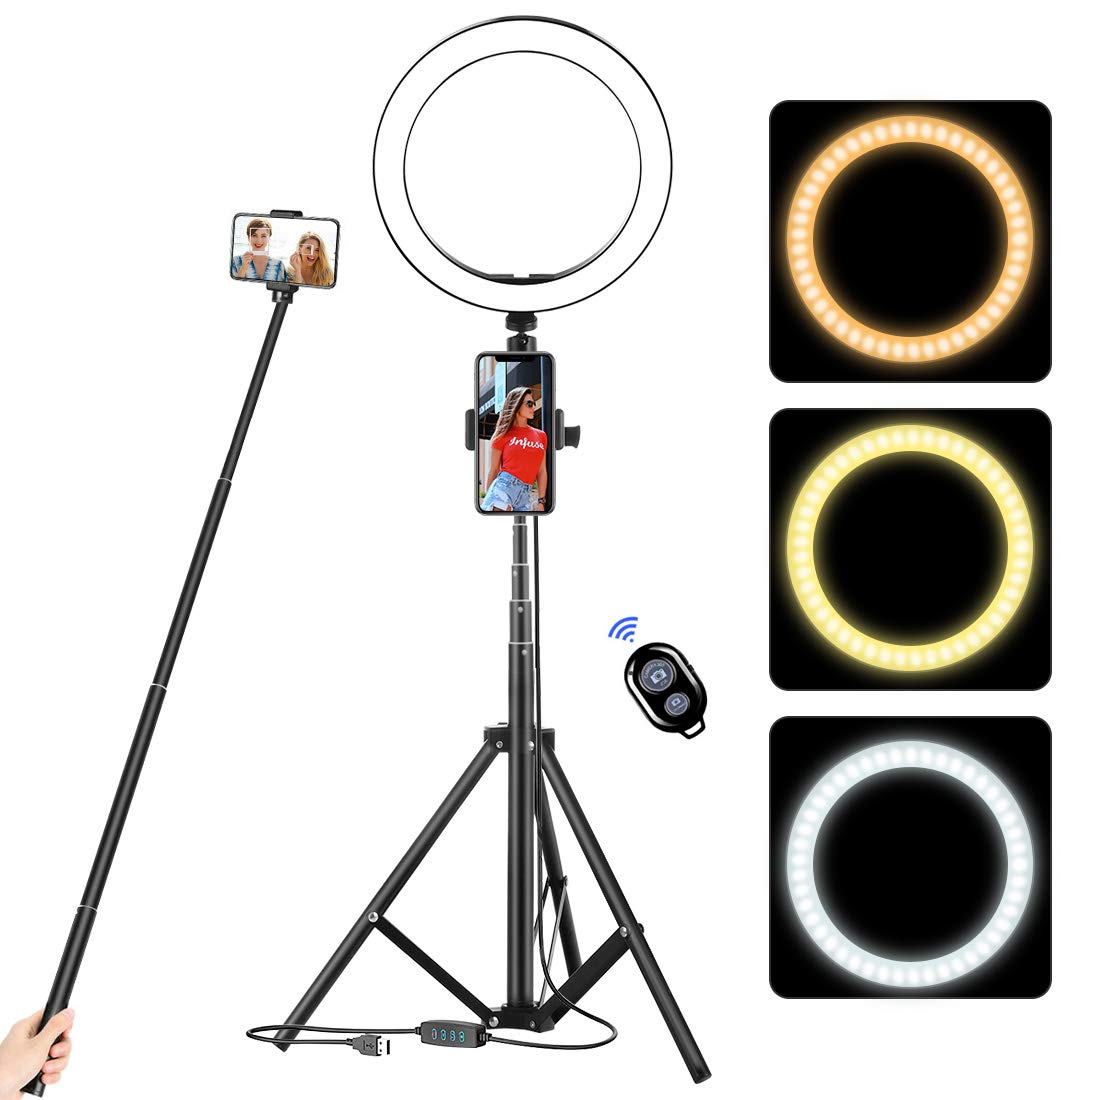 acetek 10.2'' Selfie Ring Light with Tripod Stand & Cellphone Holder, LED Camera Selfie Ring Light for Live Stream/Makeup/YouTube Video/Photography Compatible with iPhone and Android, Wireless Remote by acetek